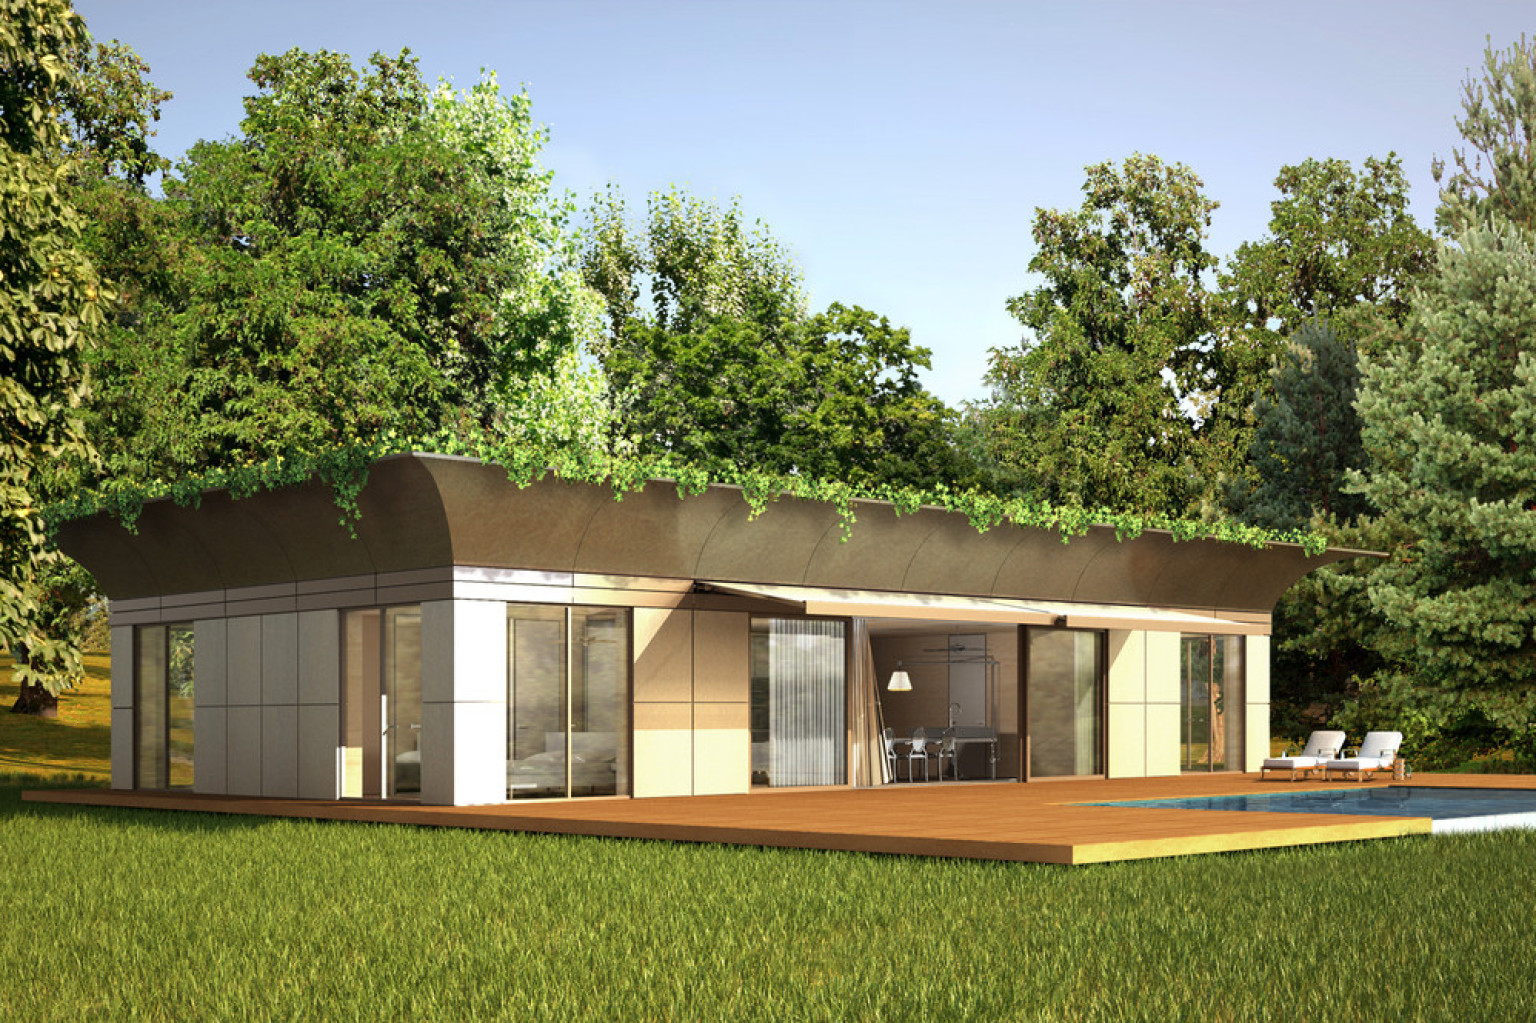 Green Home Design Ideas manufactured and mobile homes designs and ideas factory homes